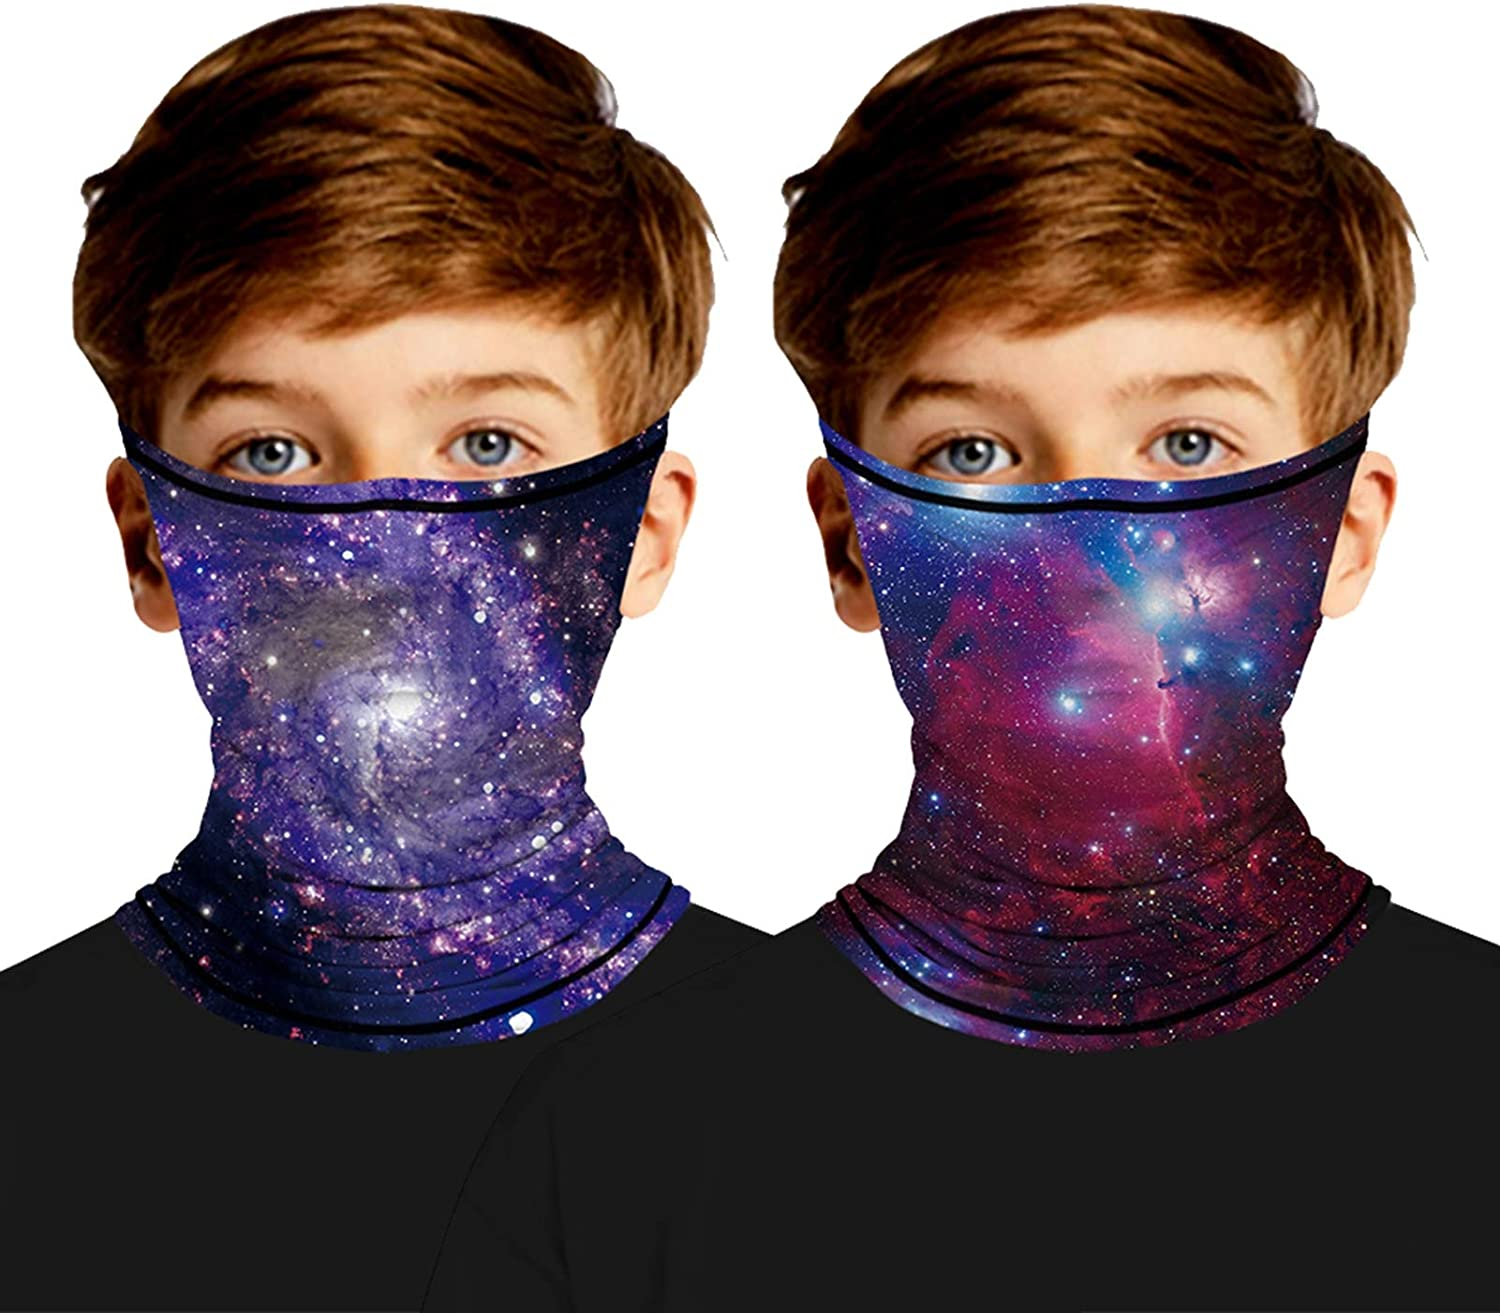 2Pcs Kids Cooling Neck Gaiters with Ear Loops, Face Cover for Boys Girls Outdoor - Scarf Bandana Dust Wind Balaclava Headwear